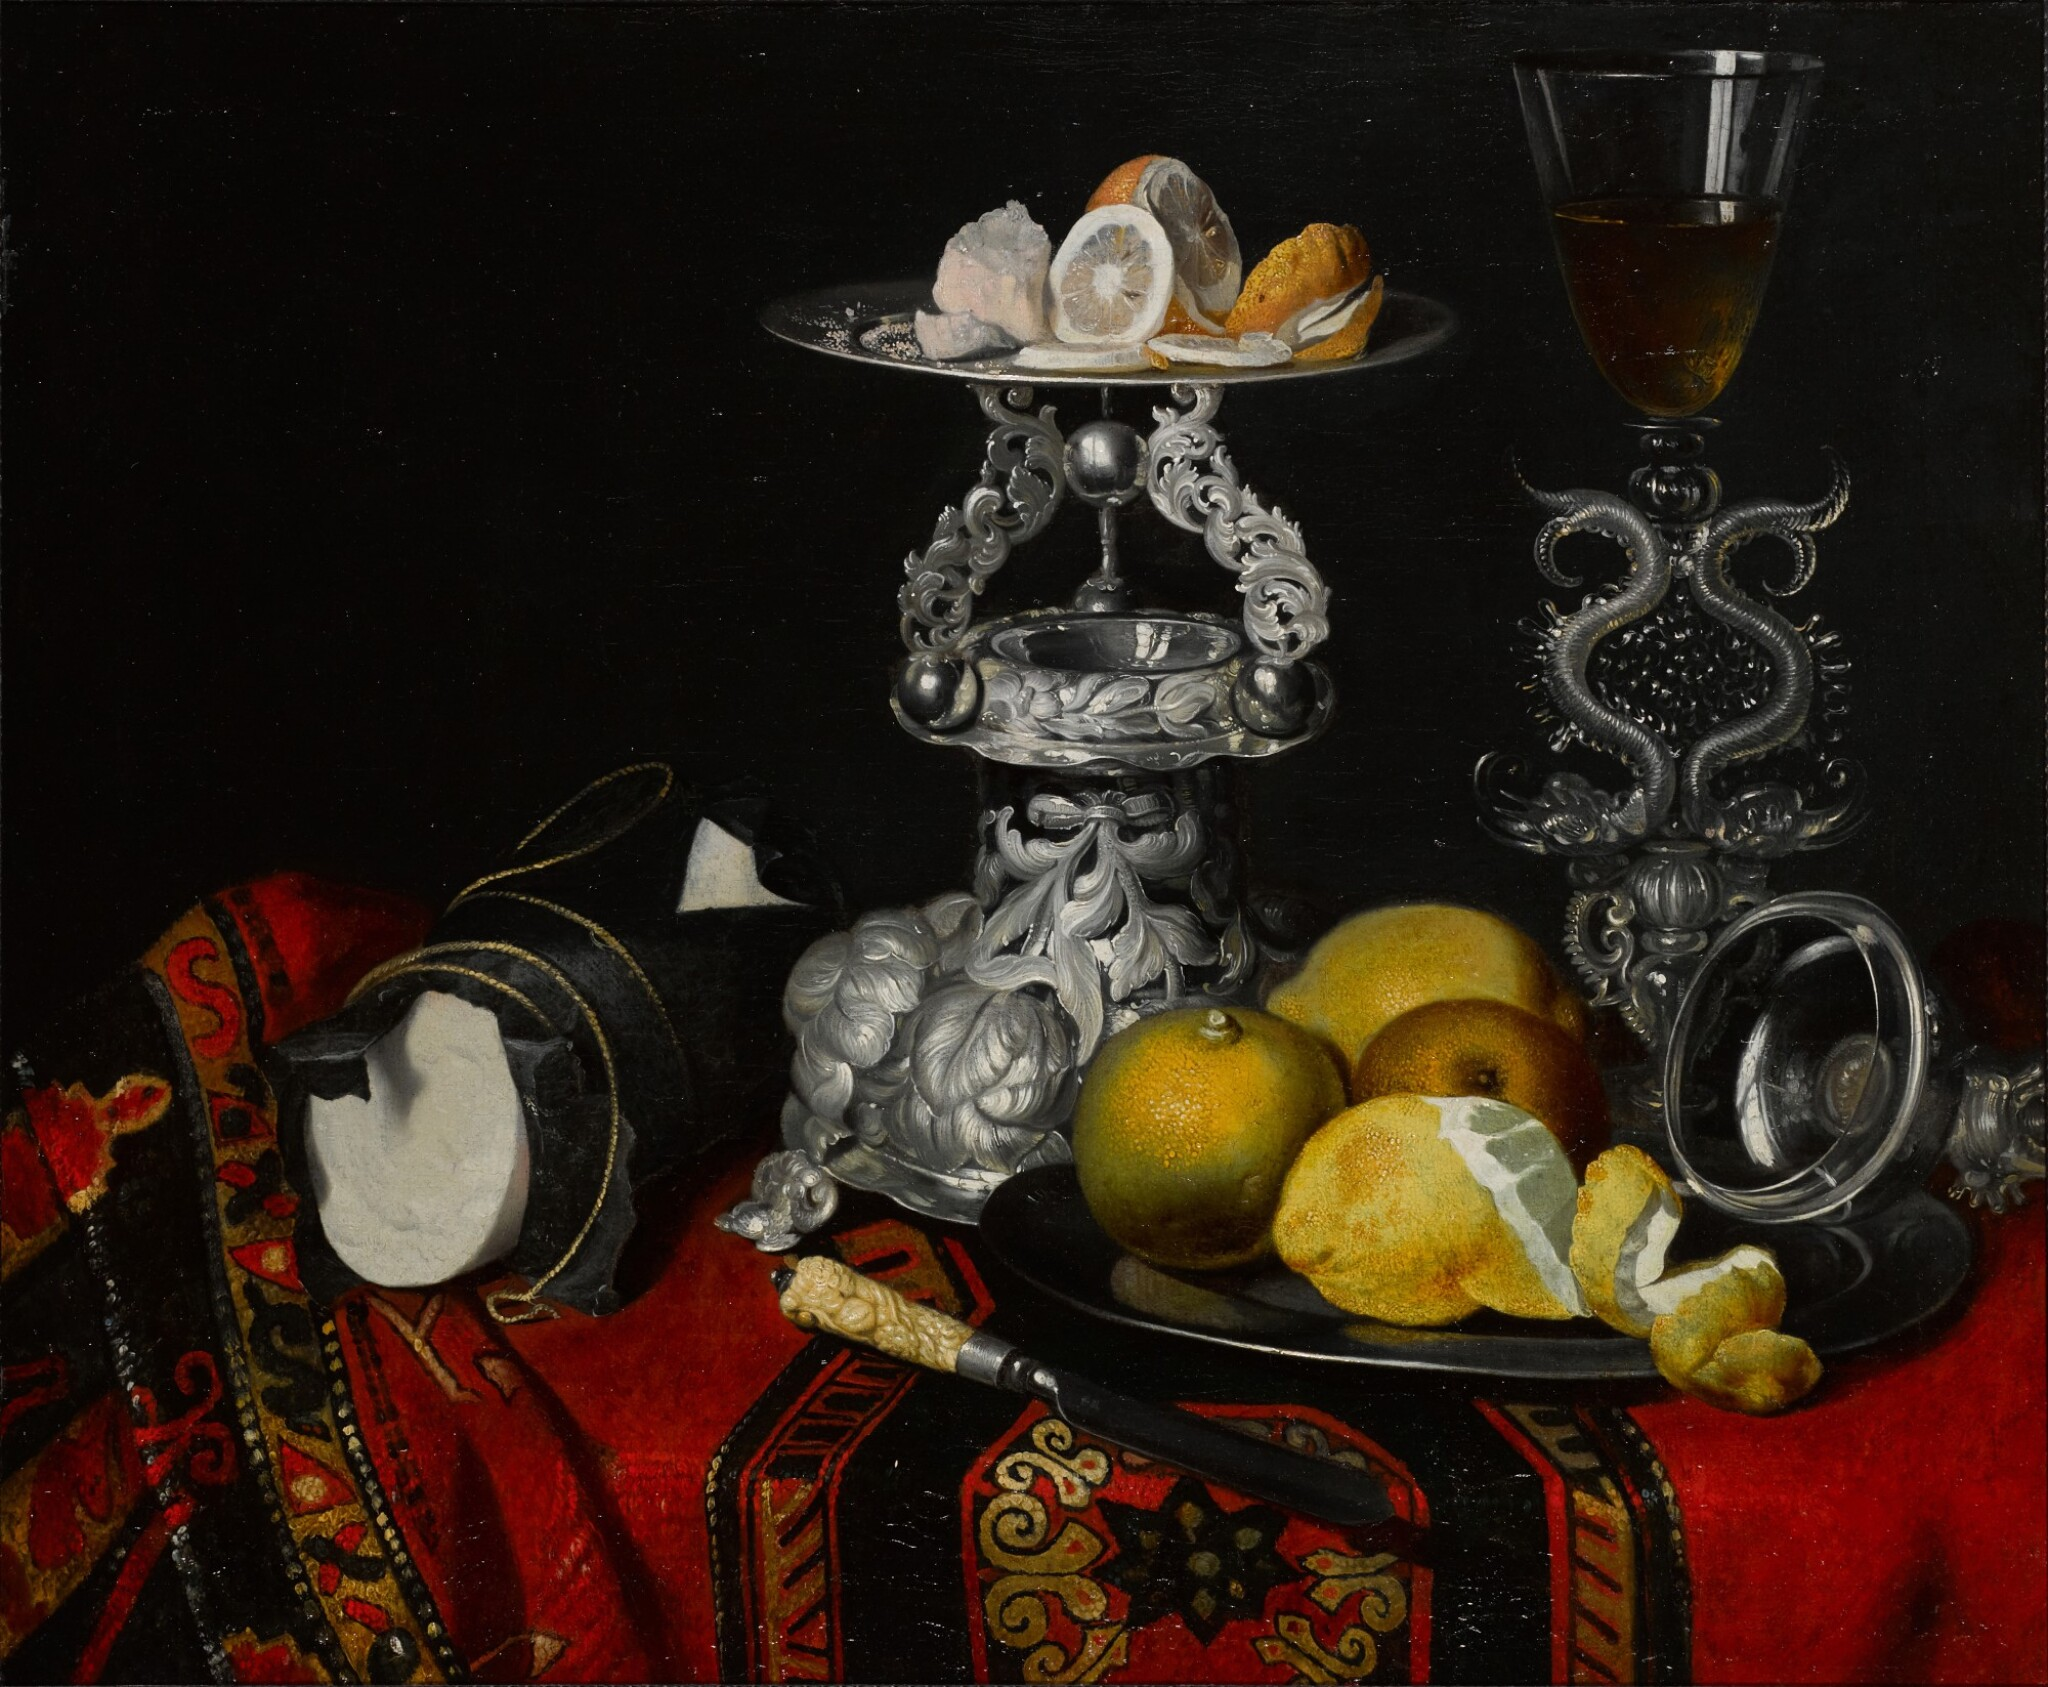 View 1 of Lot 140. Still life with a façon de venise serpent-stemmed wine glass, a silver vessel, a block of sugar and lemons on a pewter plate, all on a draped table.